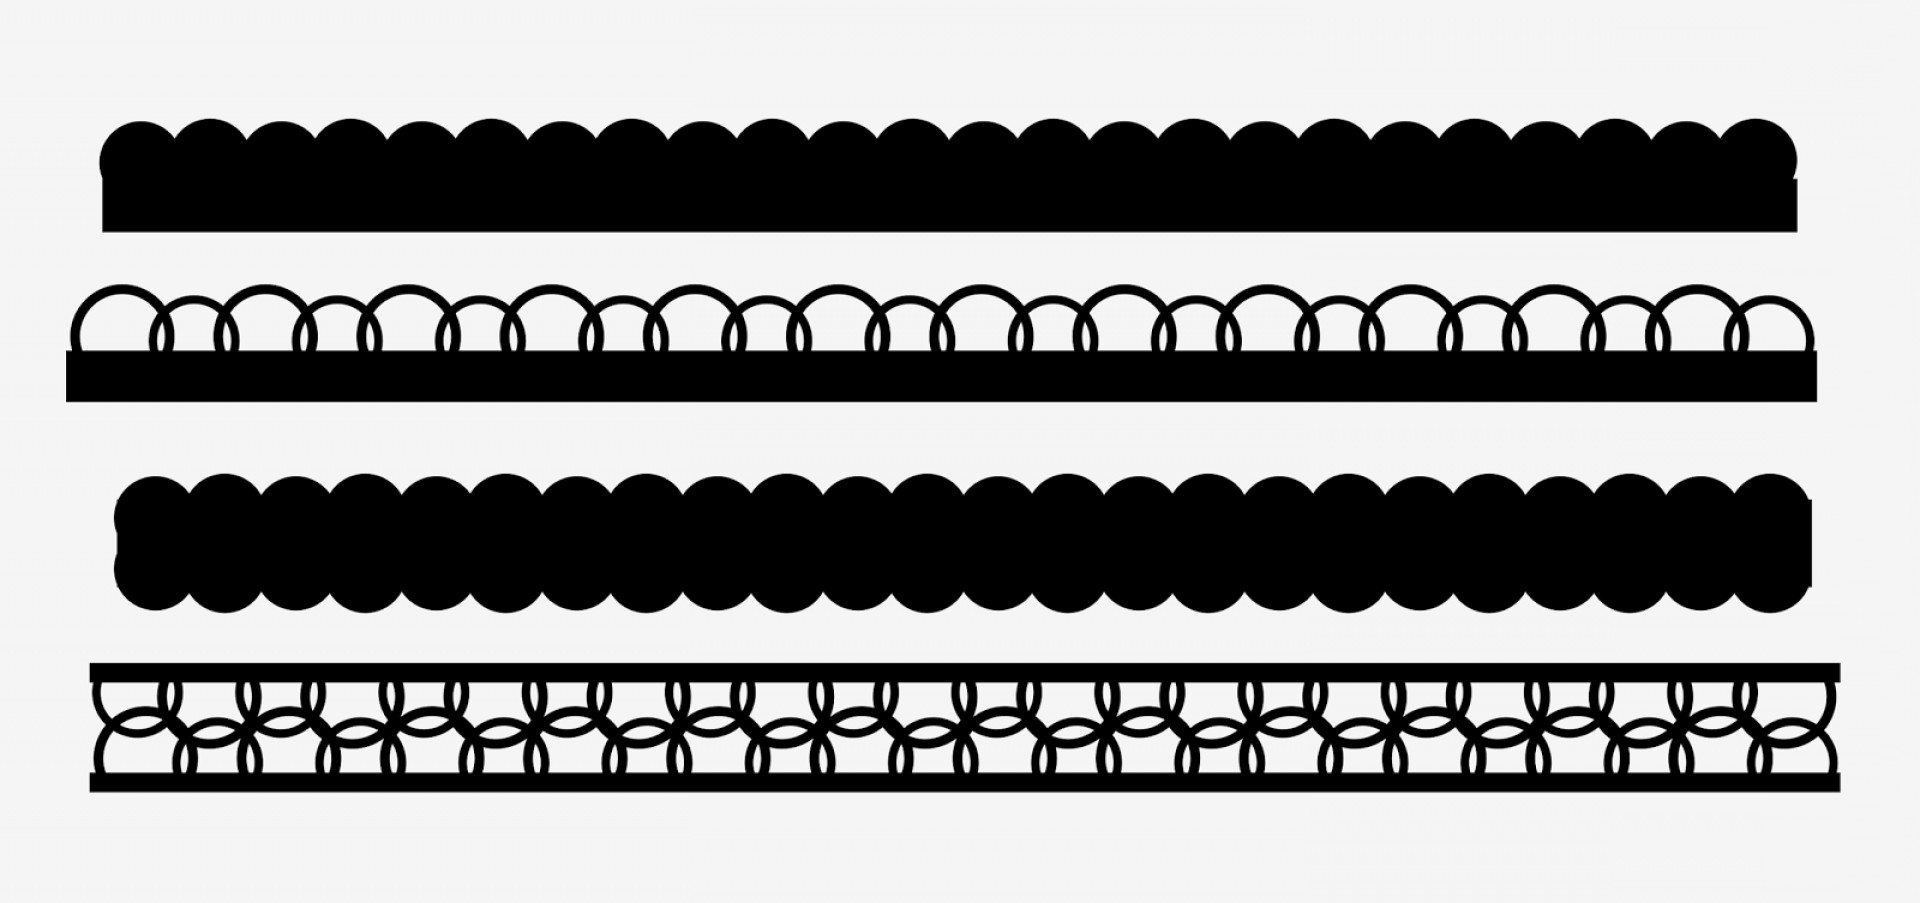 Black Scalloped Border Vector: Free Scallop Border Svg For Scrapbooking